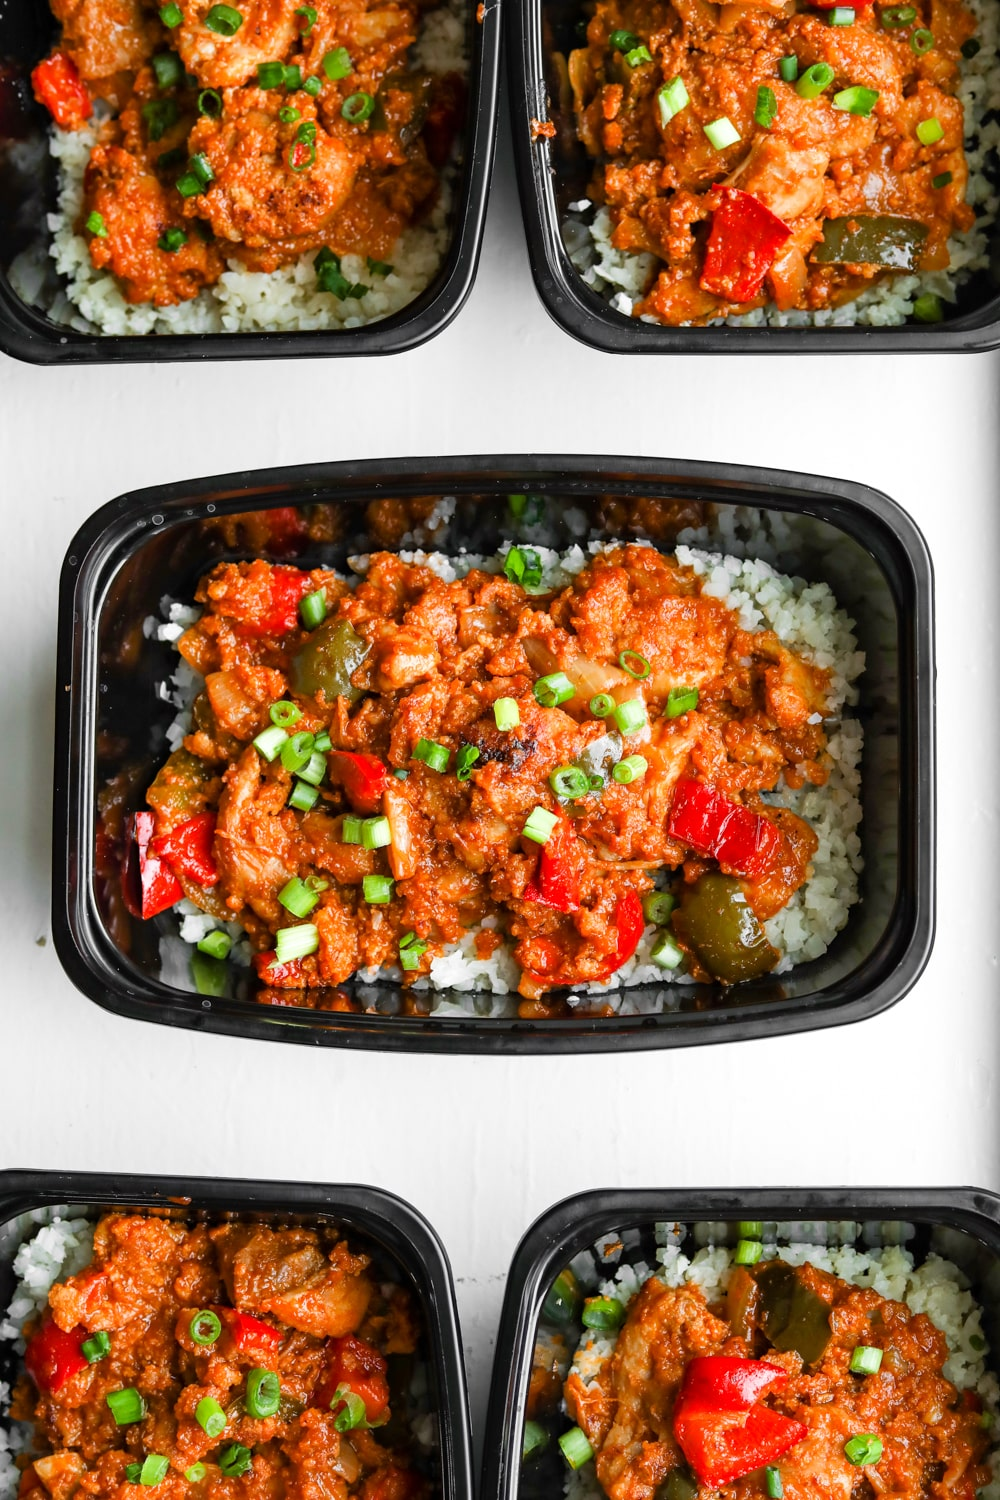 A meal prep container filled with cauliflower rice and topped with BBQ chicken and vegetables.